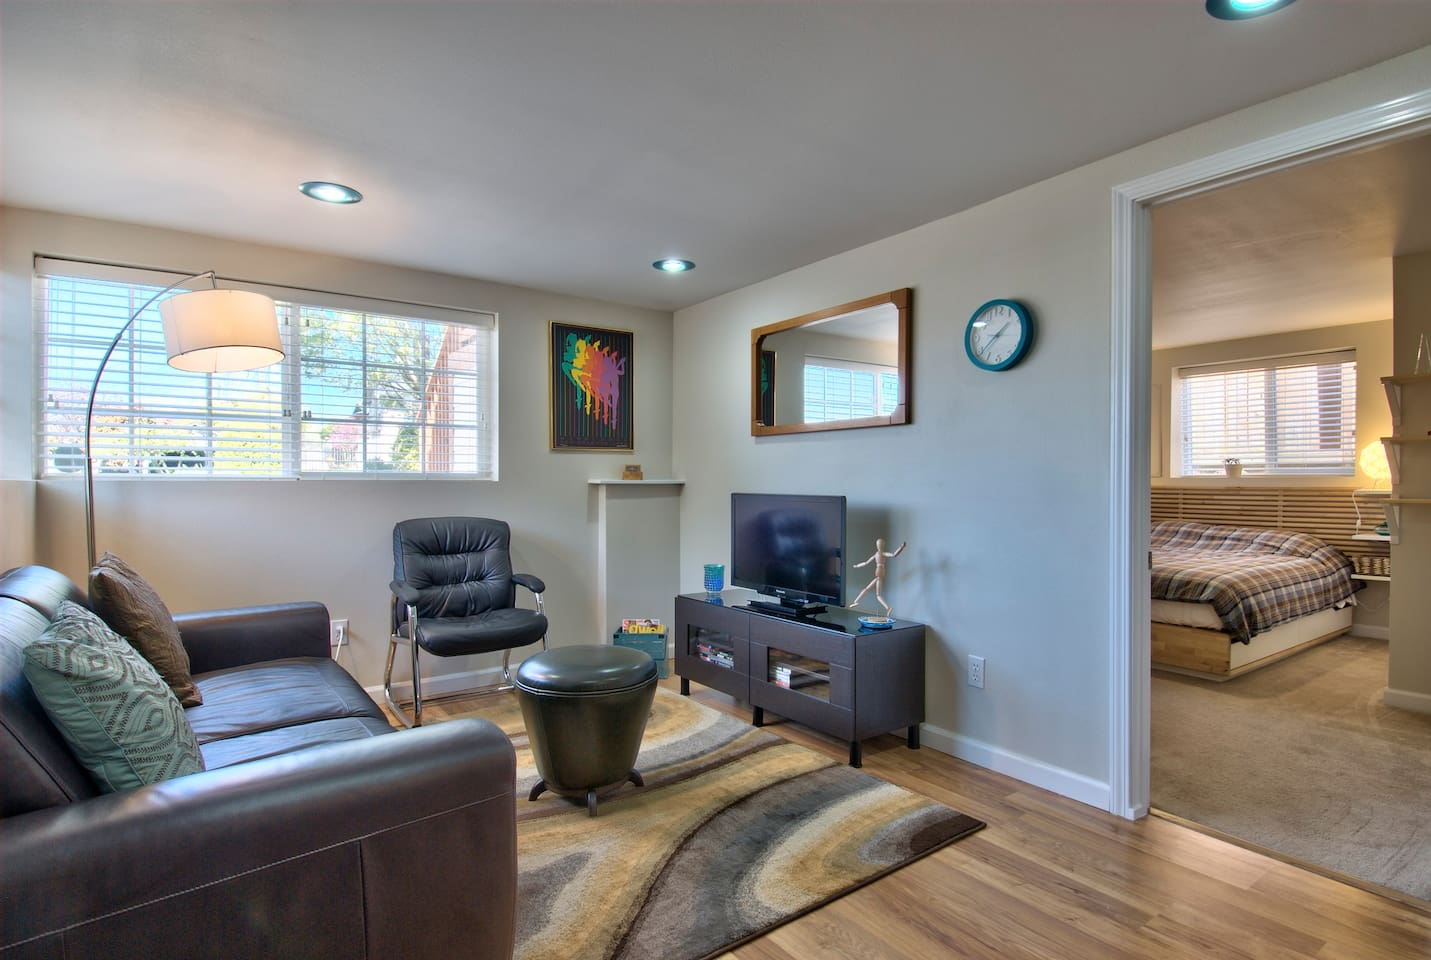 Freshly renovated 1930 home. Central yet peaceful location - close to I-5, I-90, downtown, sports venues.